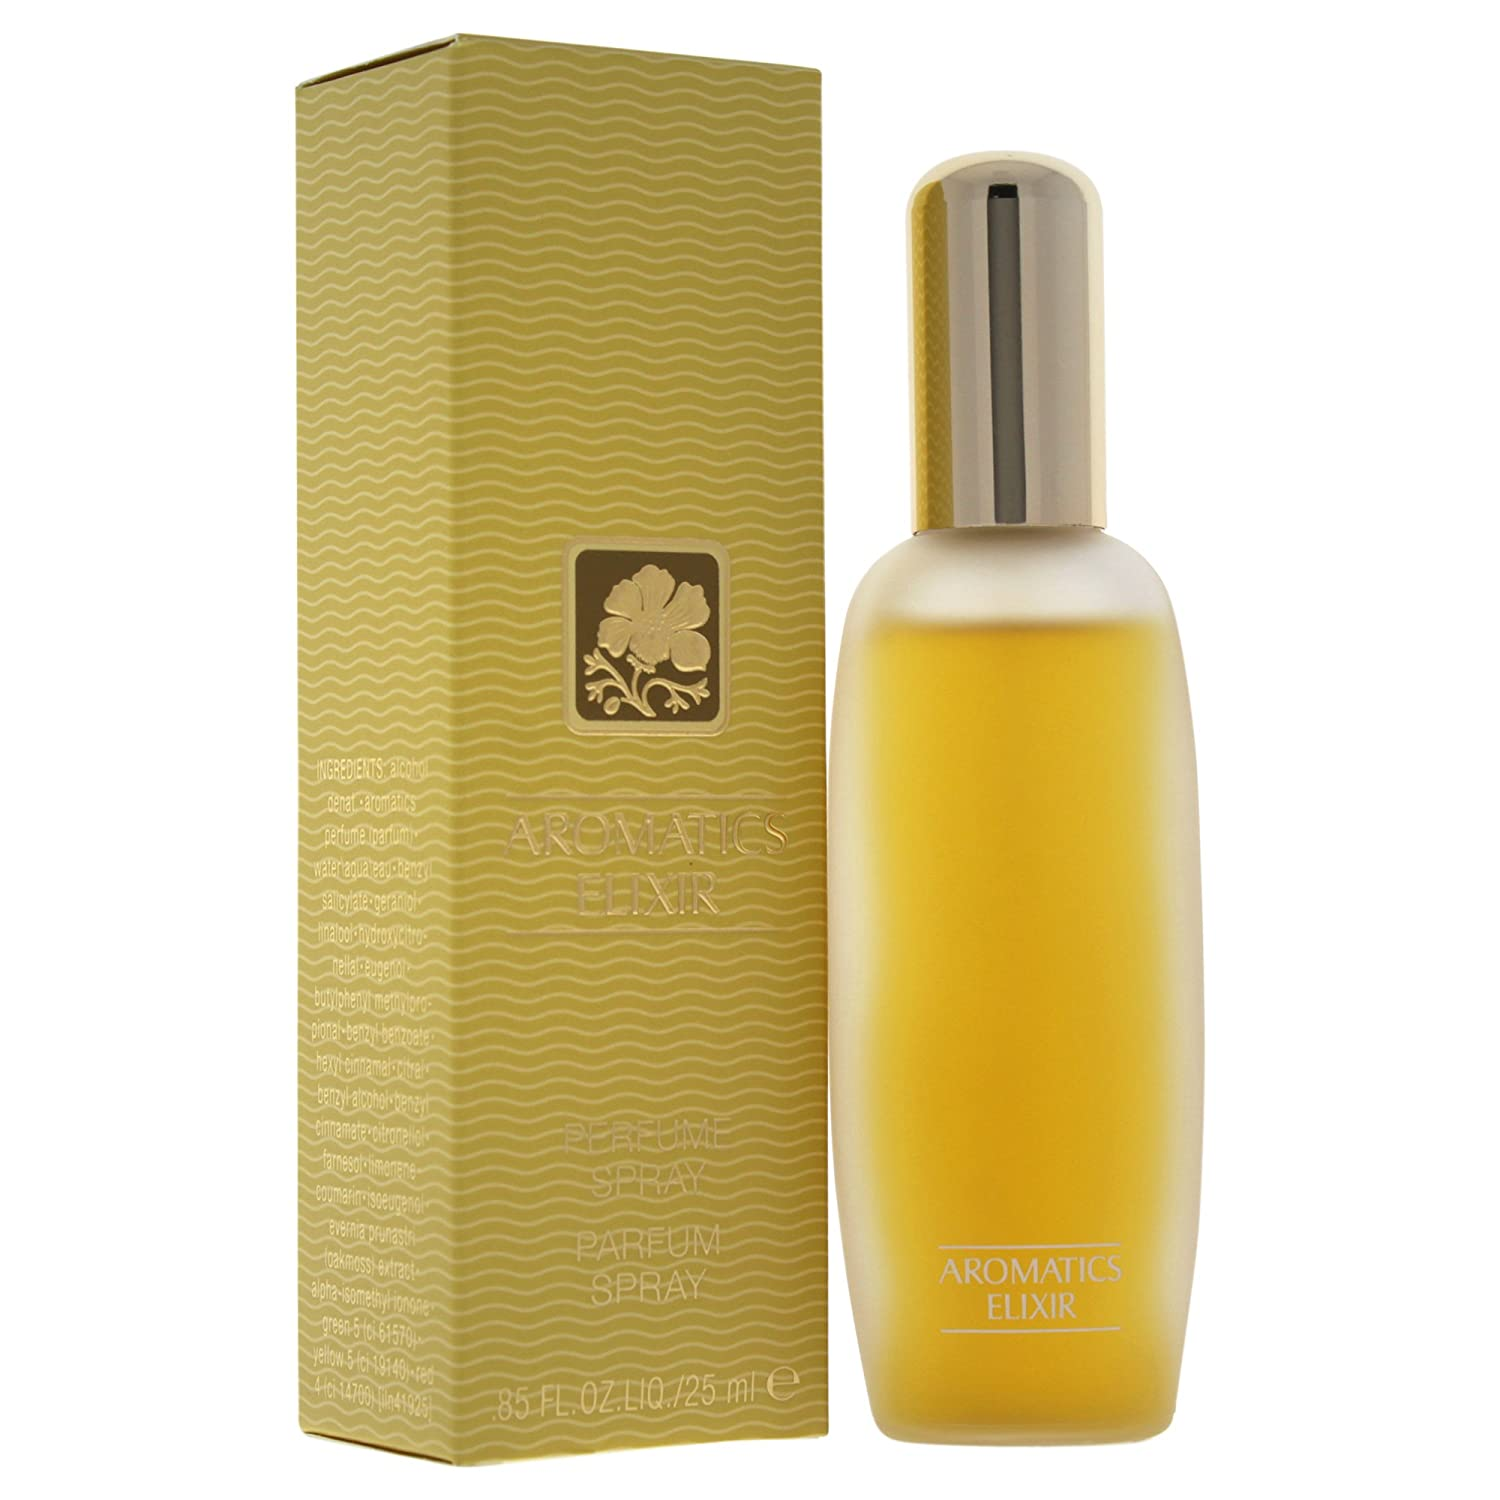 Aromatics Elixir di Clinique - Eau de Parfum Edp - Spray 100 ml. CLI00453_-100